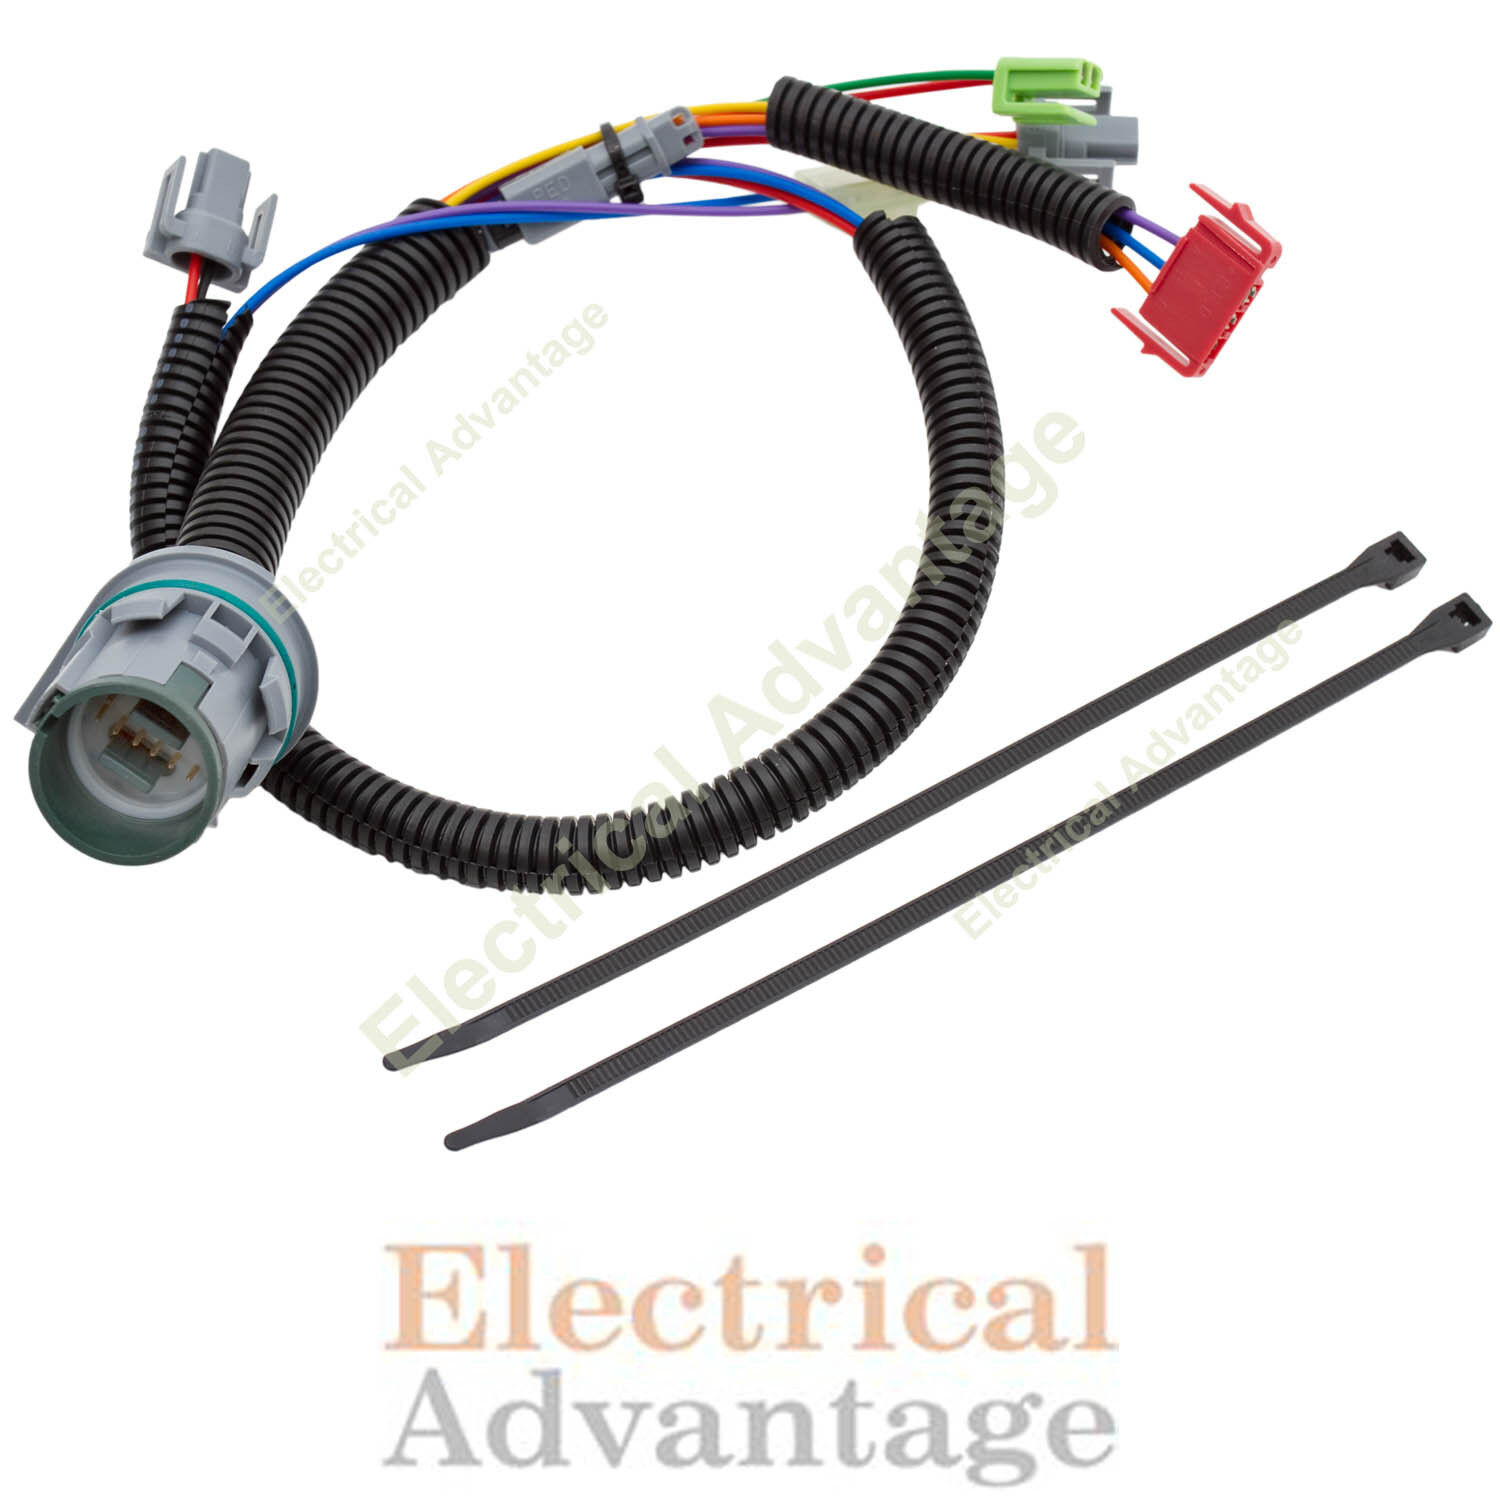 4l80 Transmission Wiring Harness - Free Wiring Diagram For You • on 4l80e harness replacement, psi conversion harness, 4l60e to 4l80e conversion harness, 4l80e controller, 4l80e transmission harness, 4l80e shifter,